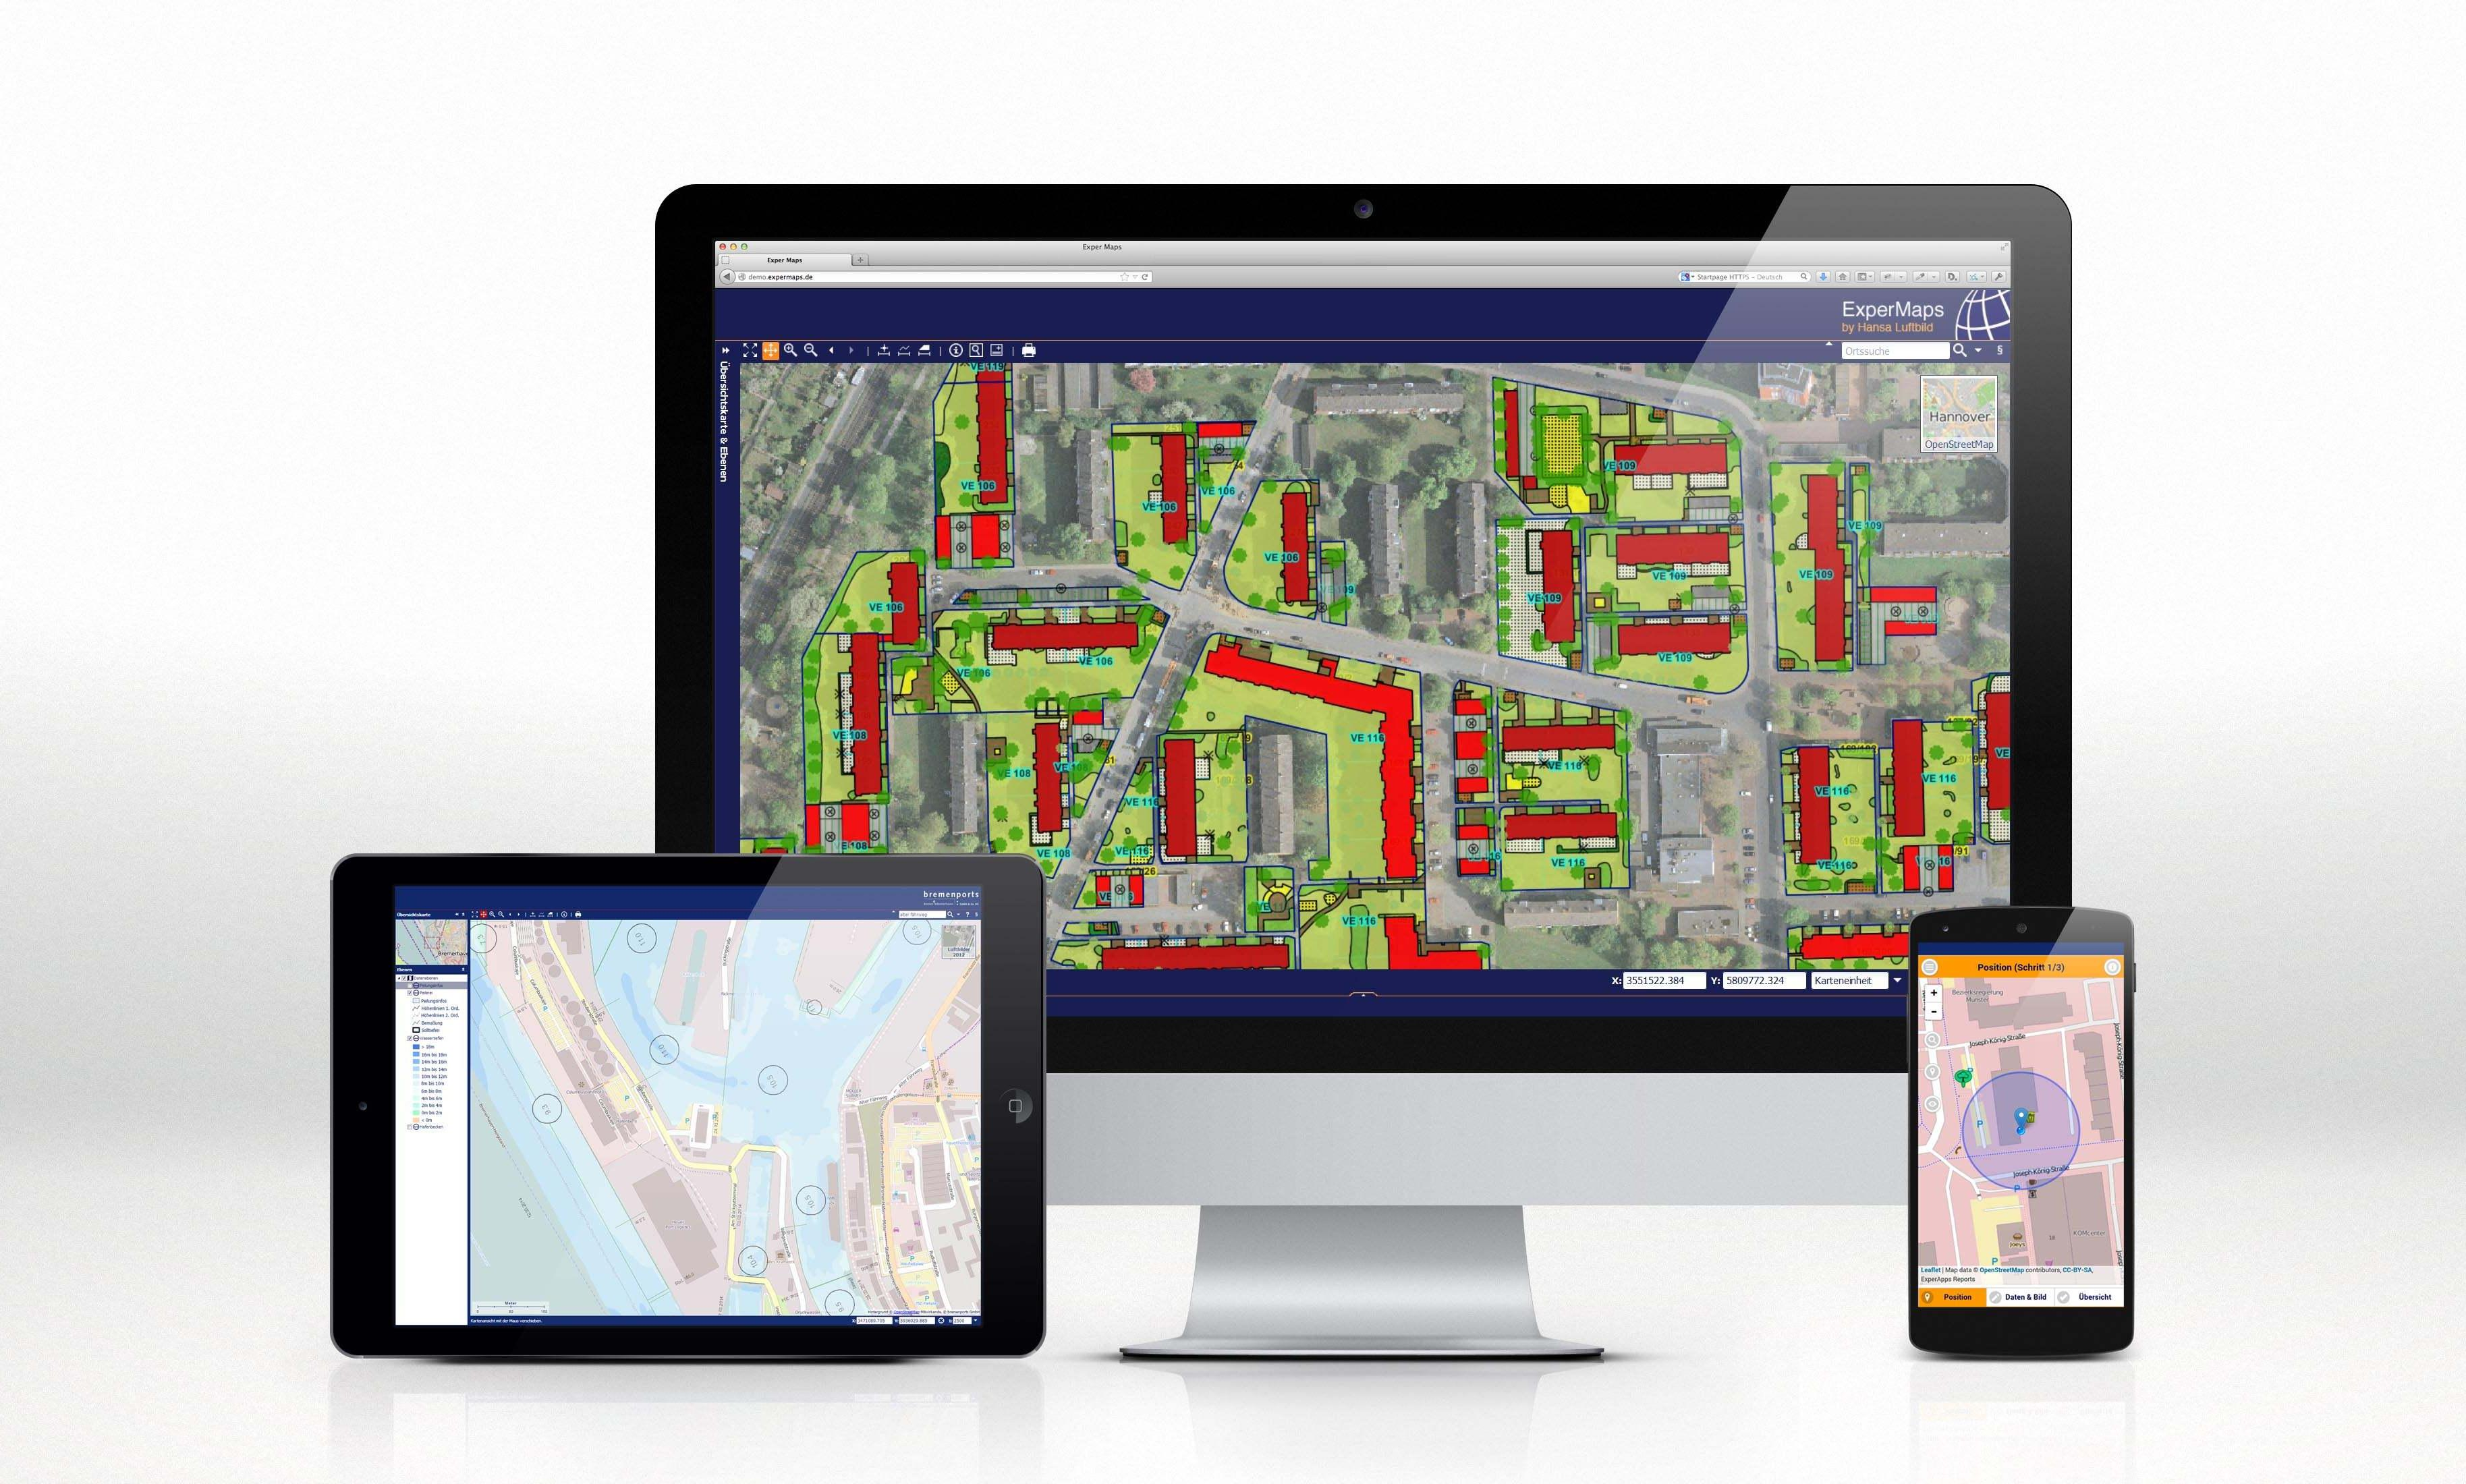 ExperMaps - the flexible Online GIS by Hansa Luftbild